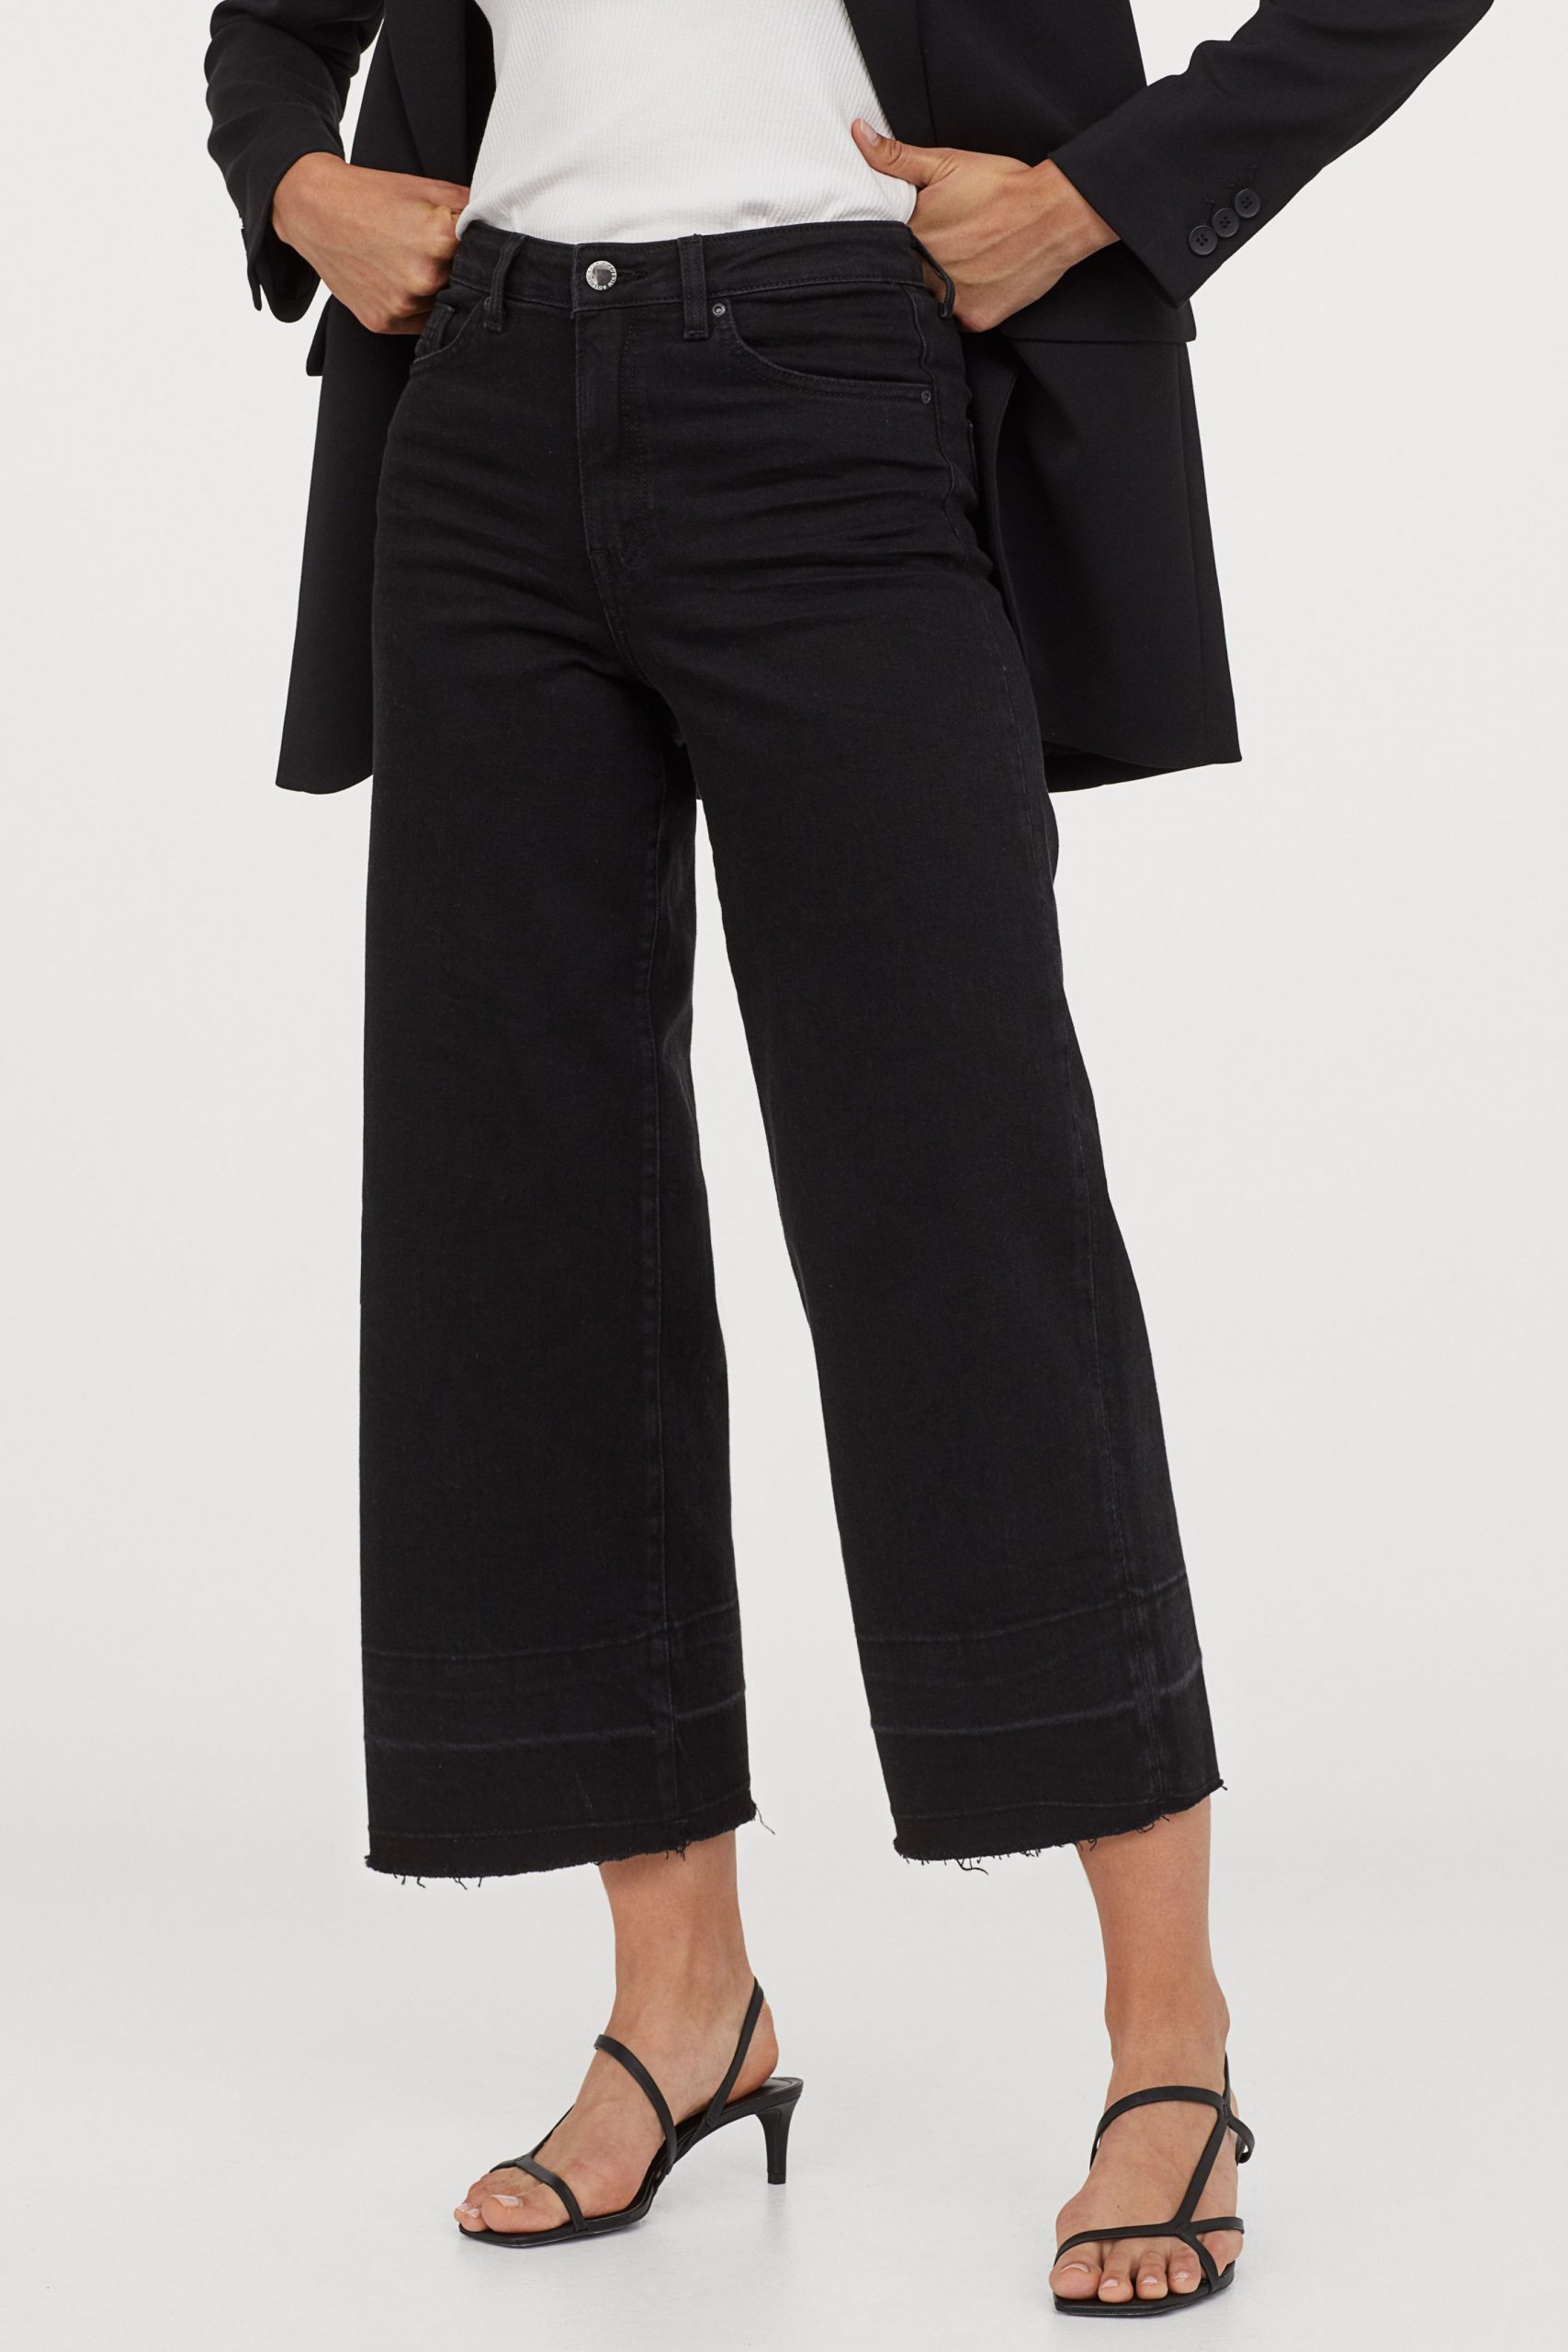 Culotte high ankle jeans £24.99